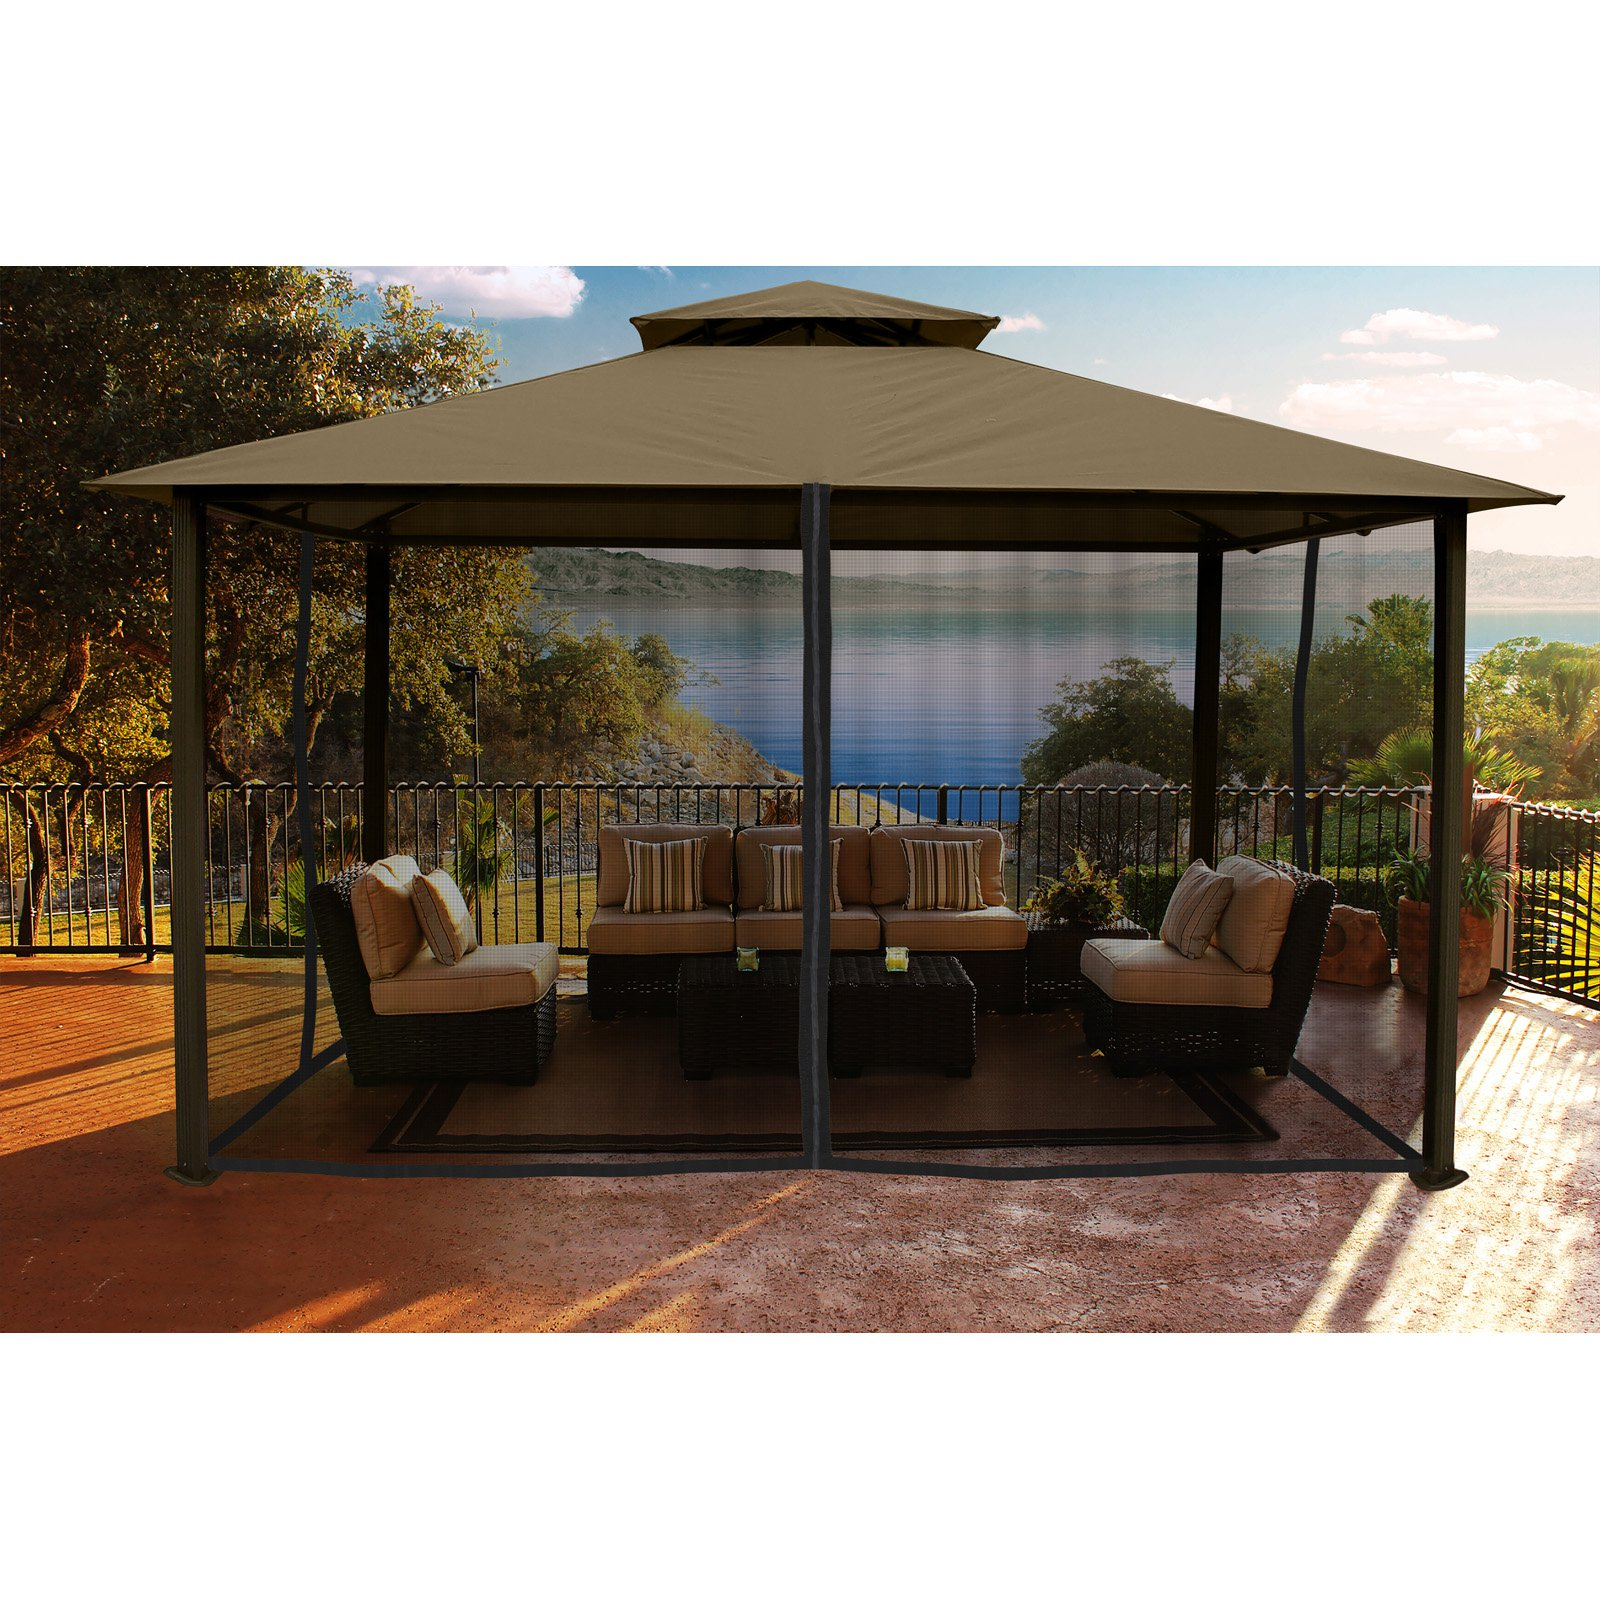 Madrid 11' x 14' Gazebo with Sand Top and Mosquito Netting